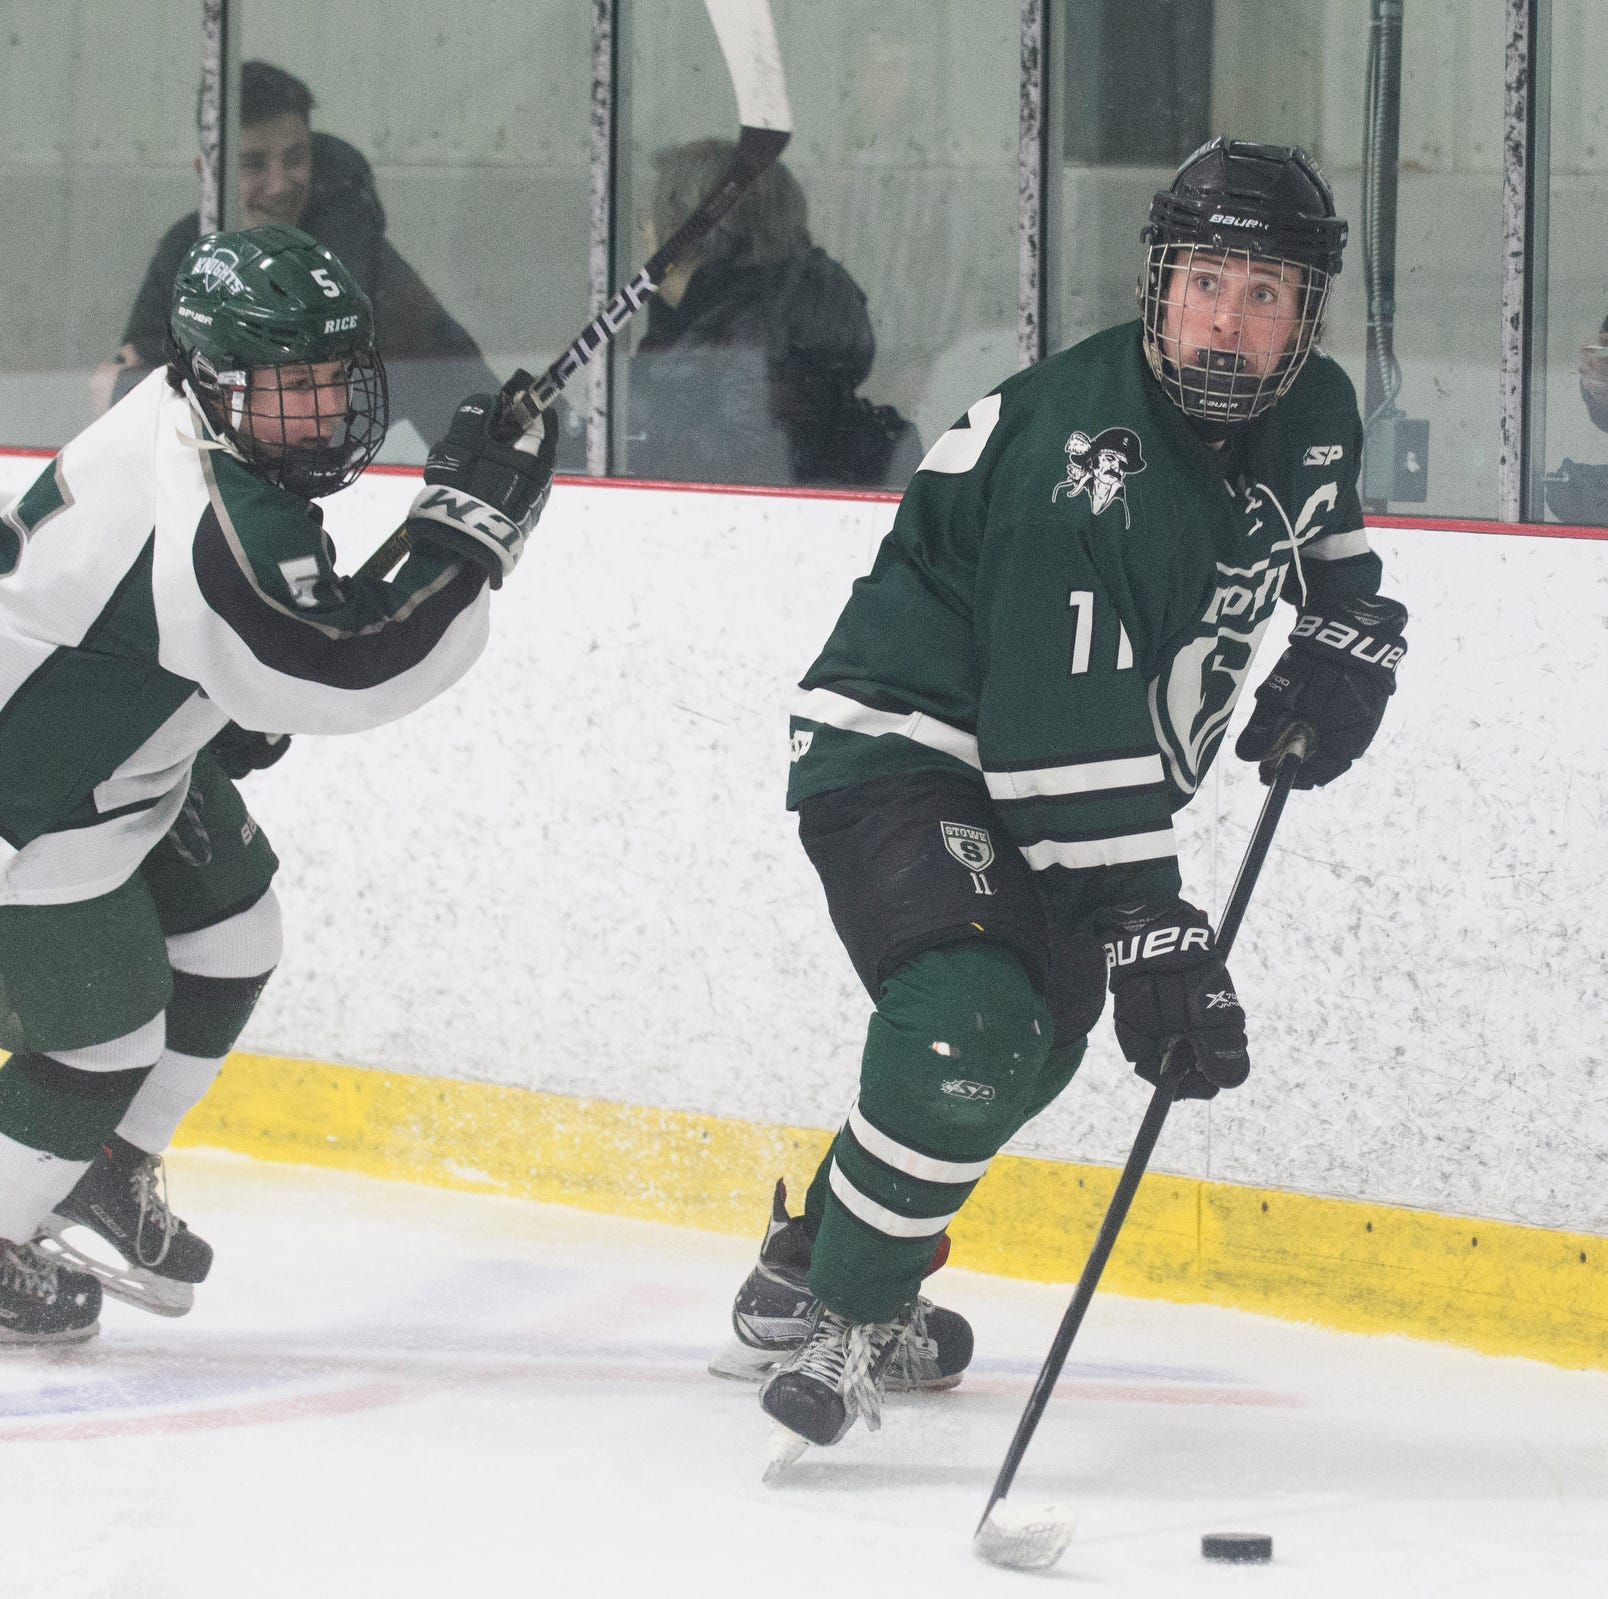 Wednesday's H.S. highlights: Boerger's hat trick lifts Stowe over Rice